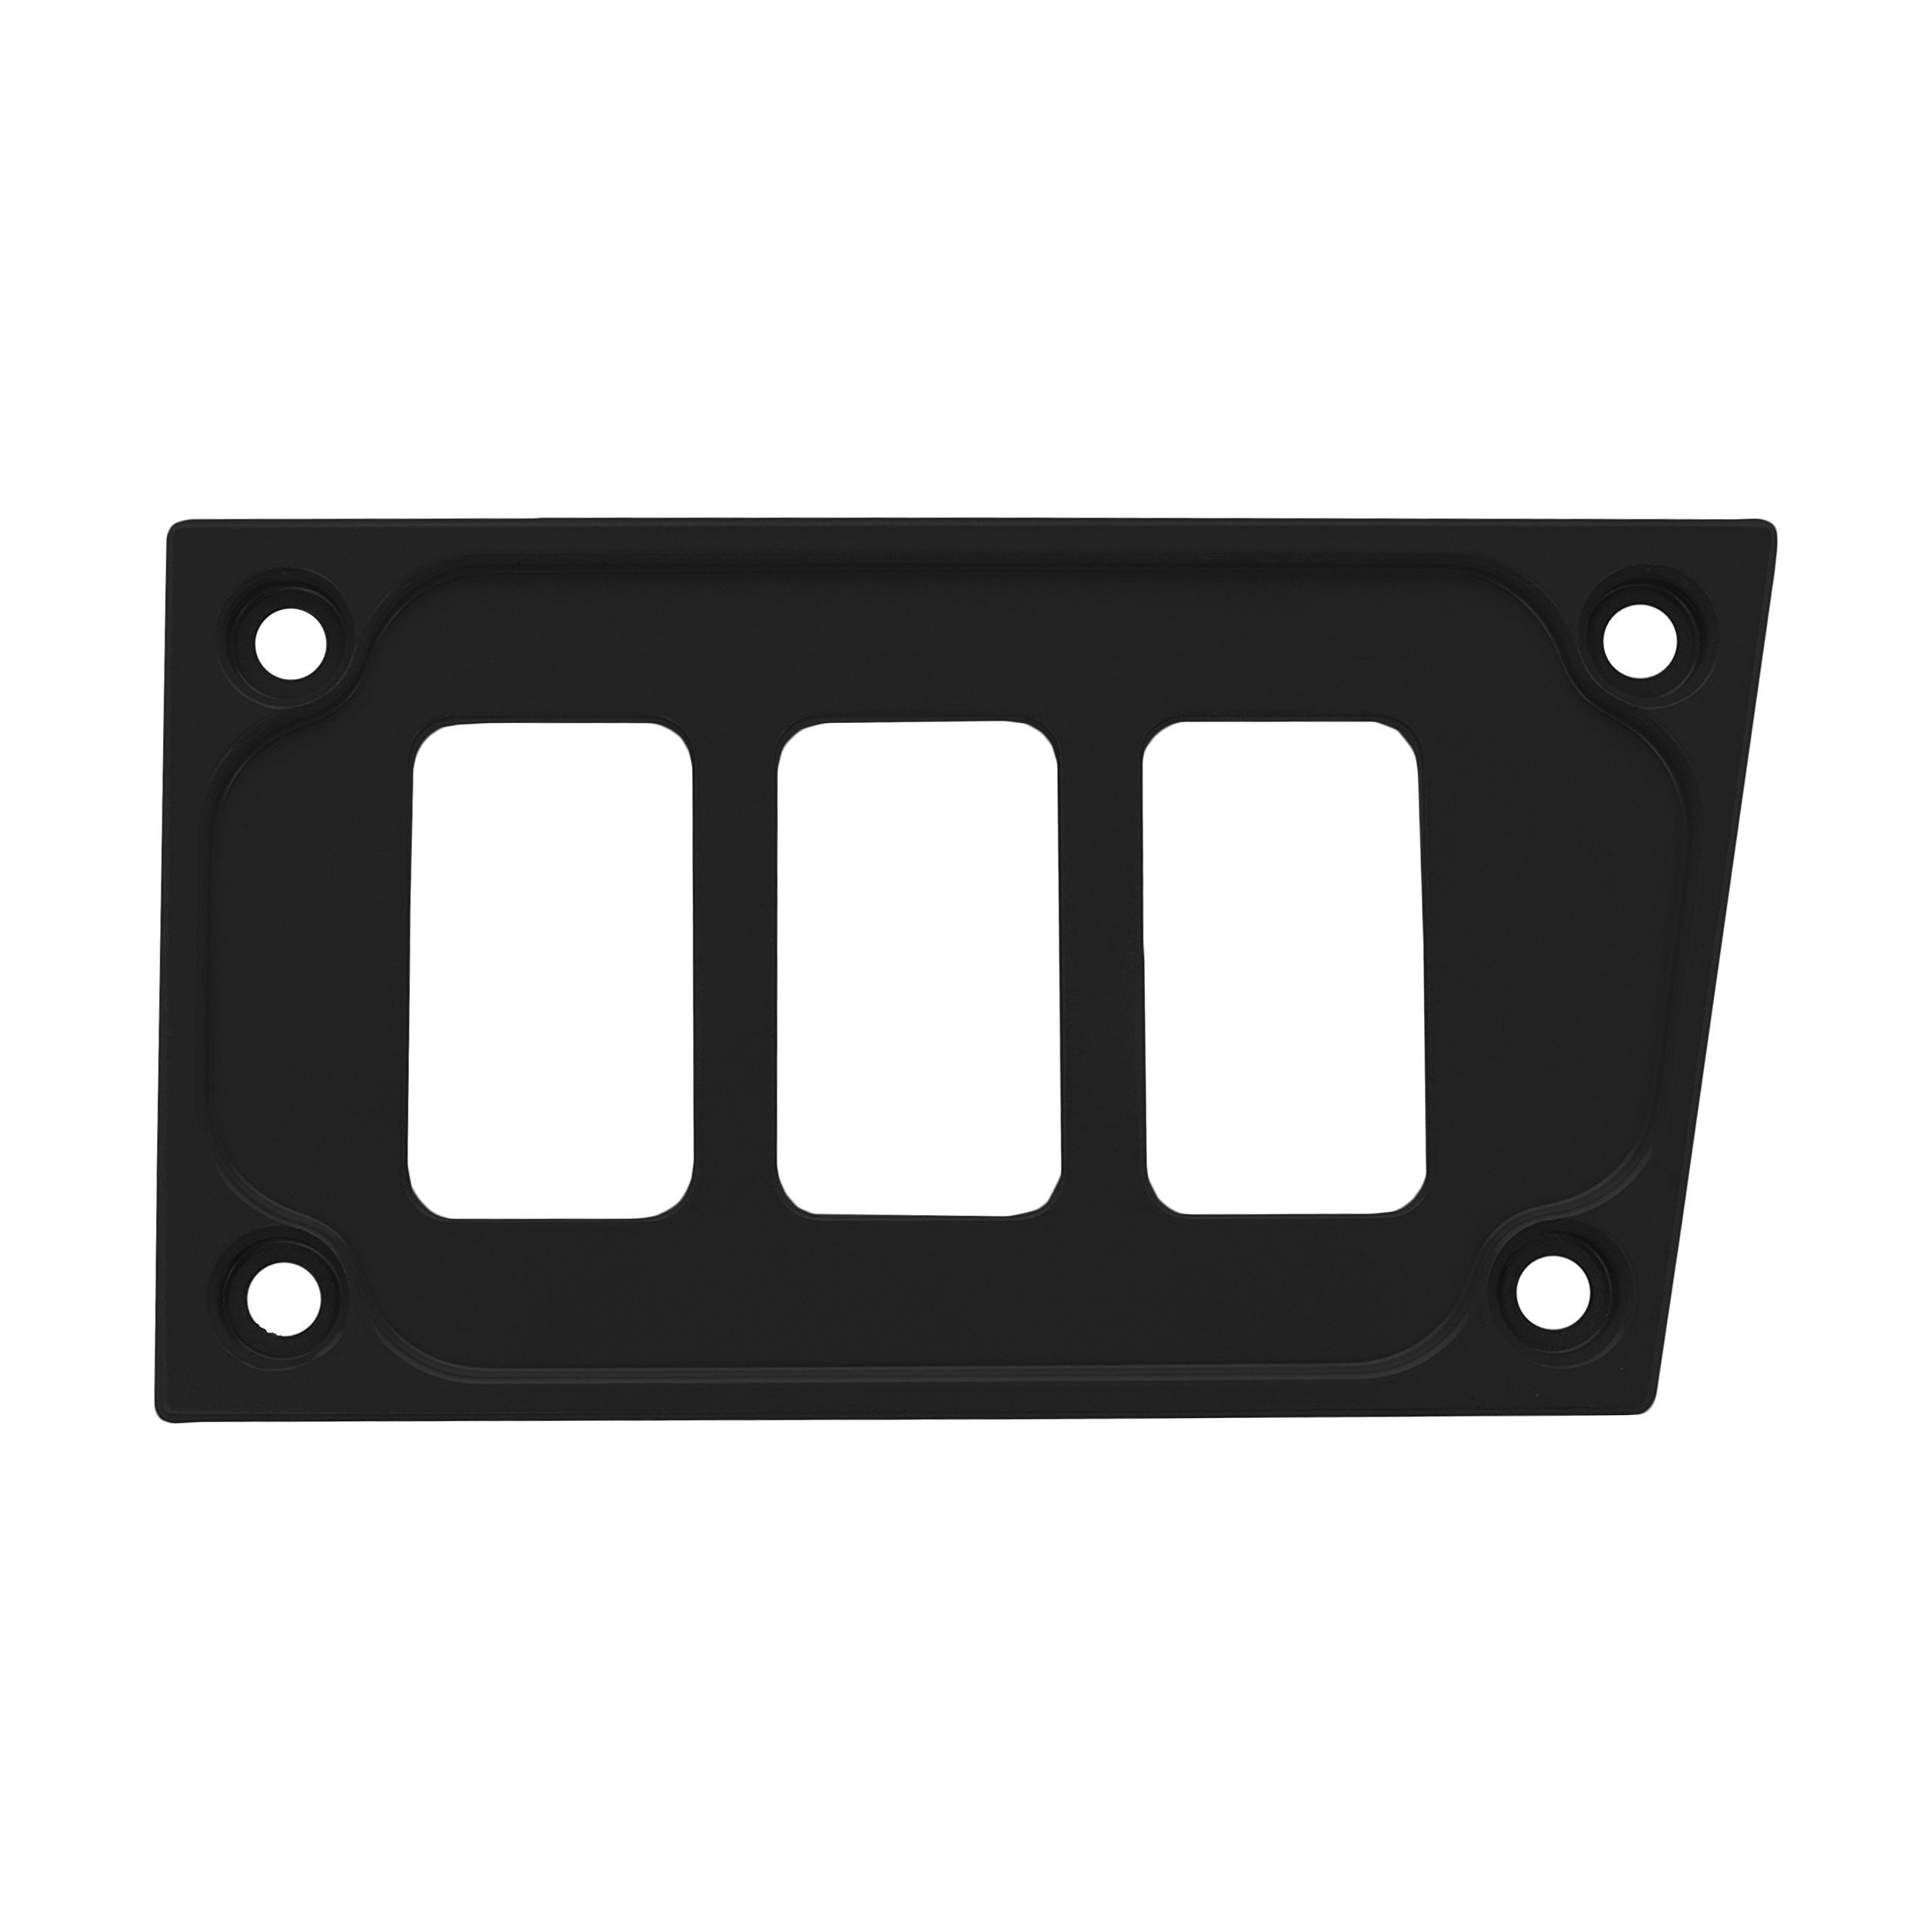 STV Motorsports Custom Aluminum Lower Left Dash Panel for Polaris RZR XP 1000 with 3 Switch Openings (no switches included) (Black)